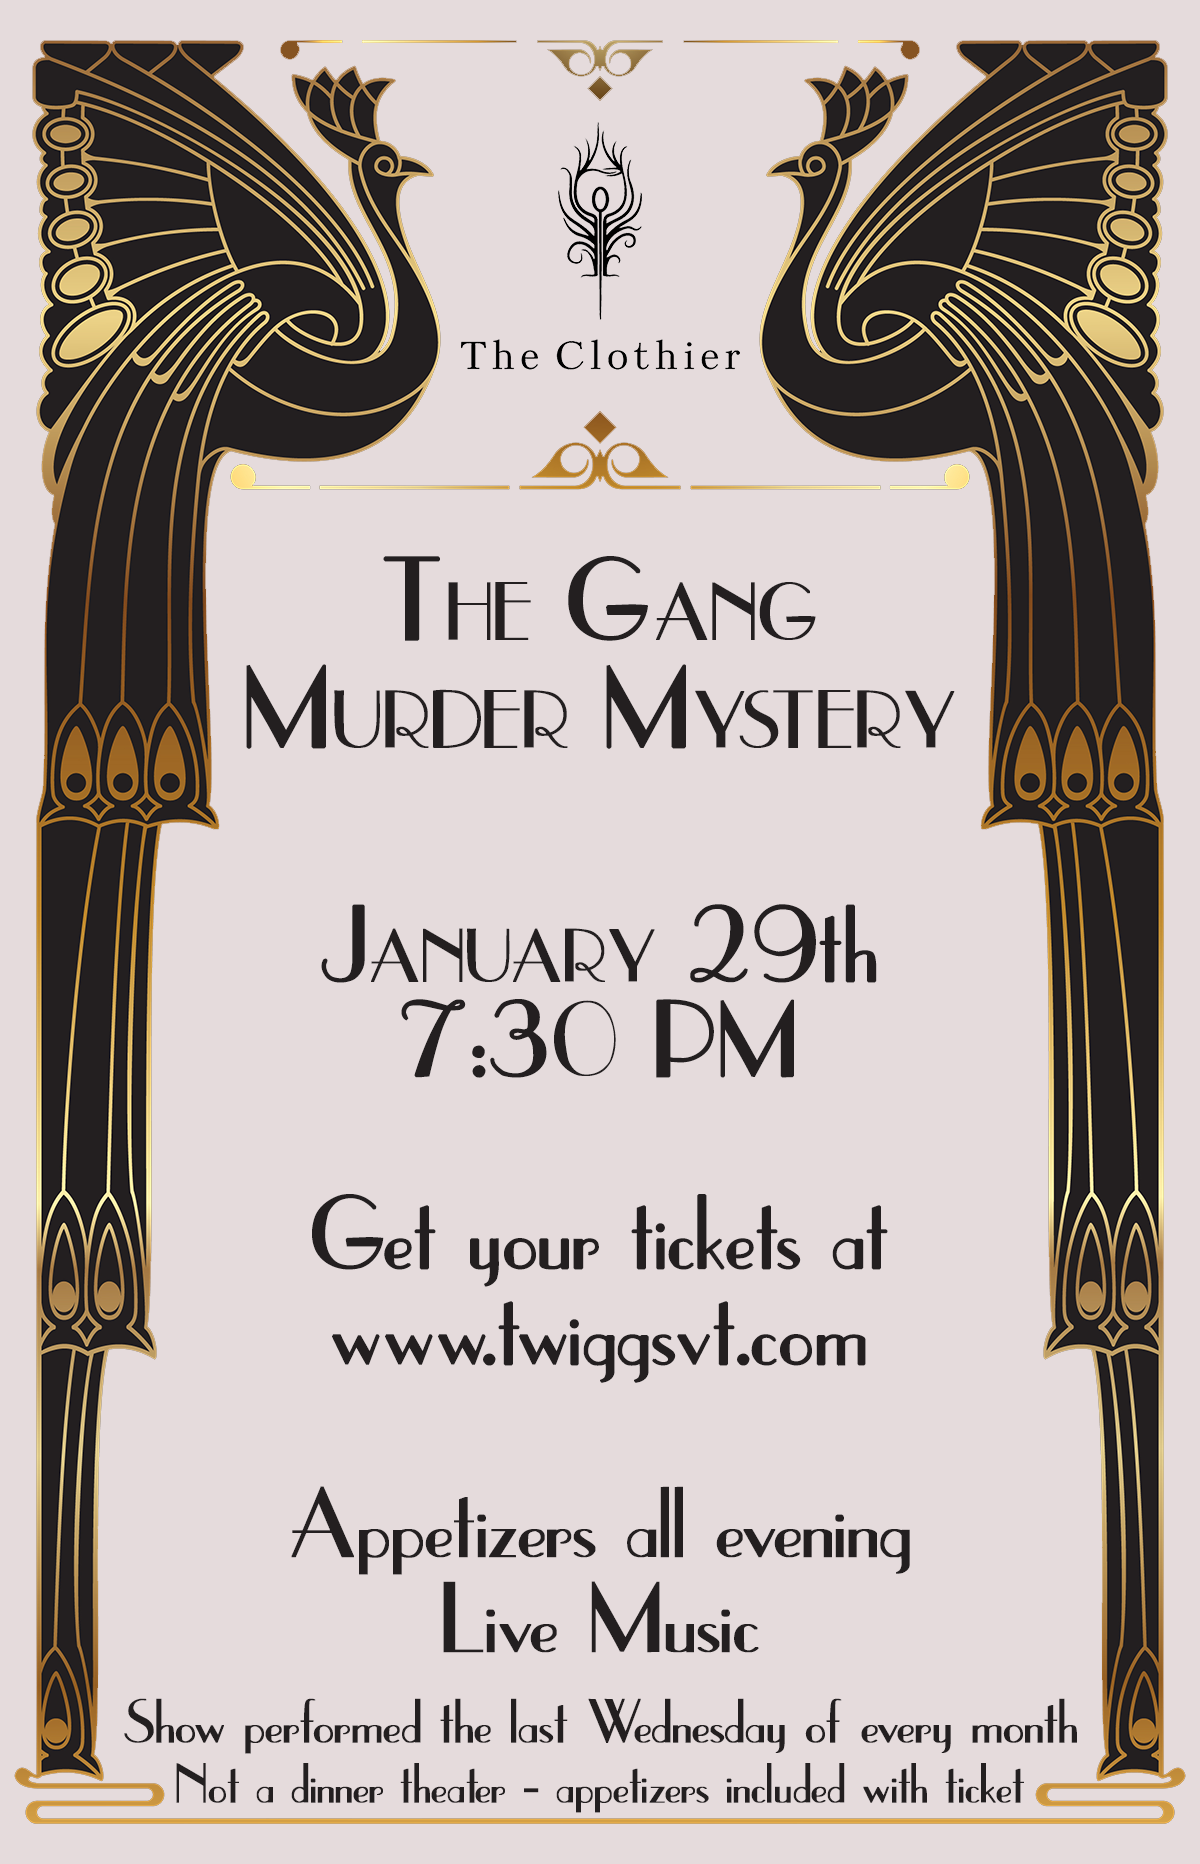 The Clothier. the Gang Murder Mystery at January 29th at 7:30 pm. Get your tickets at https://www.twiggsvt.com/. Appetizers all evening and live music. Show performed the last Wednesday of every month. Not a dinner theater - appetizers included with ticket.